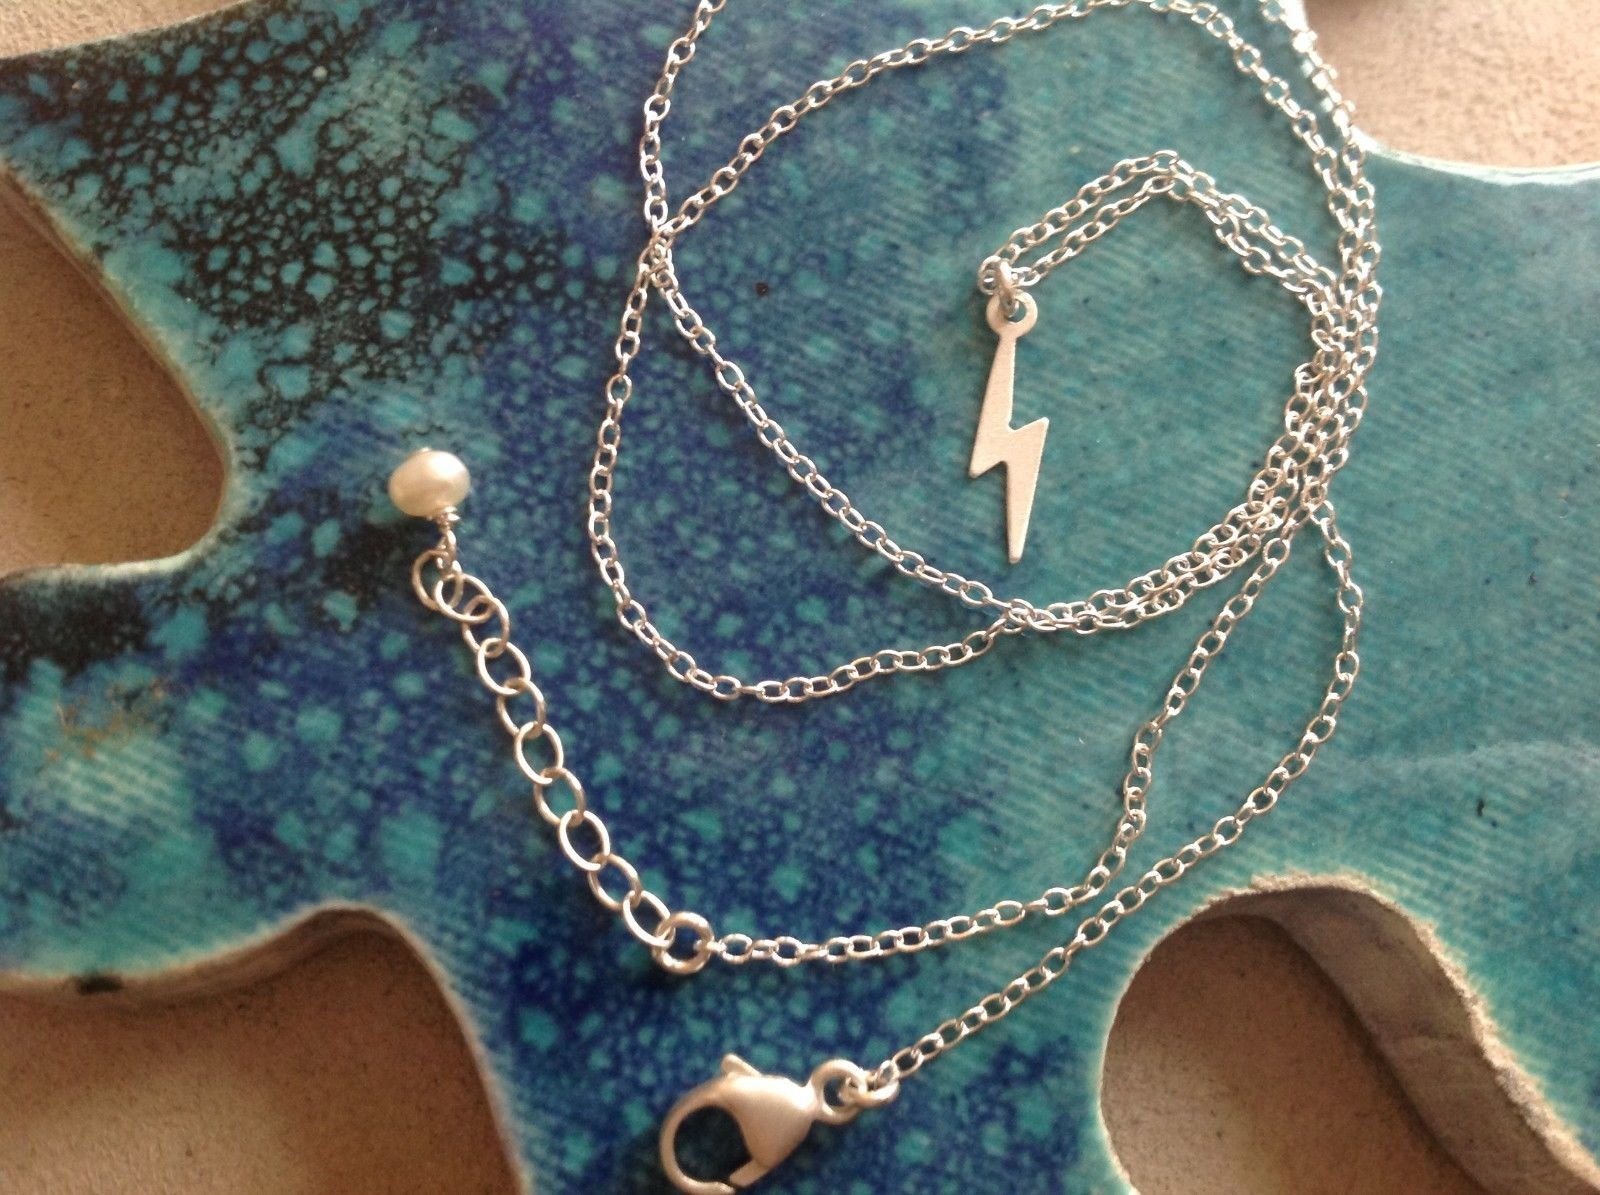 Itty bitty lightening bolt Silver Chain Necklace Zina Kao Pearl accent USA made